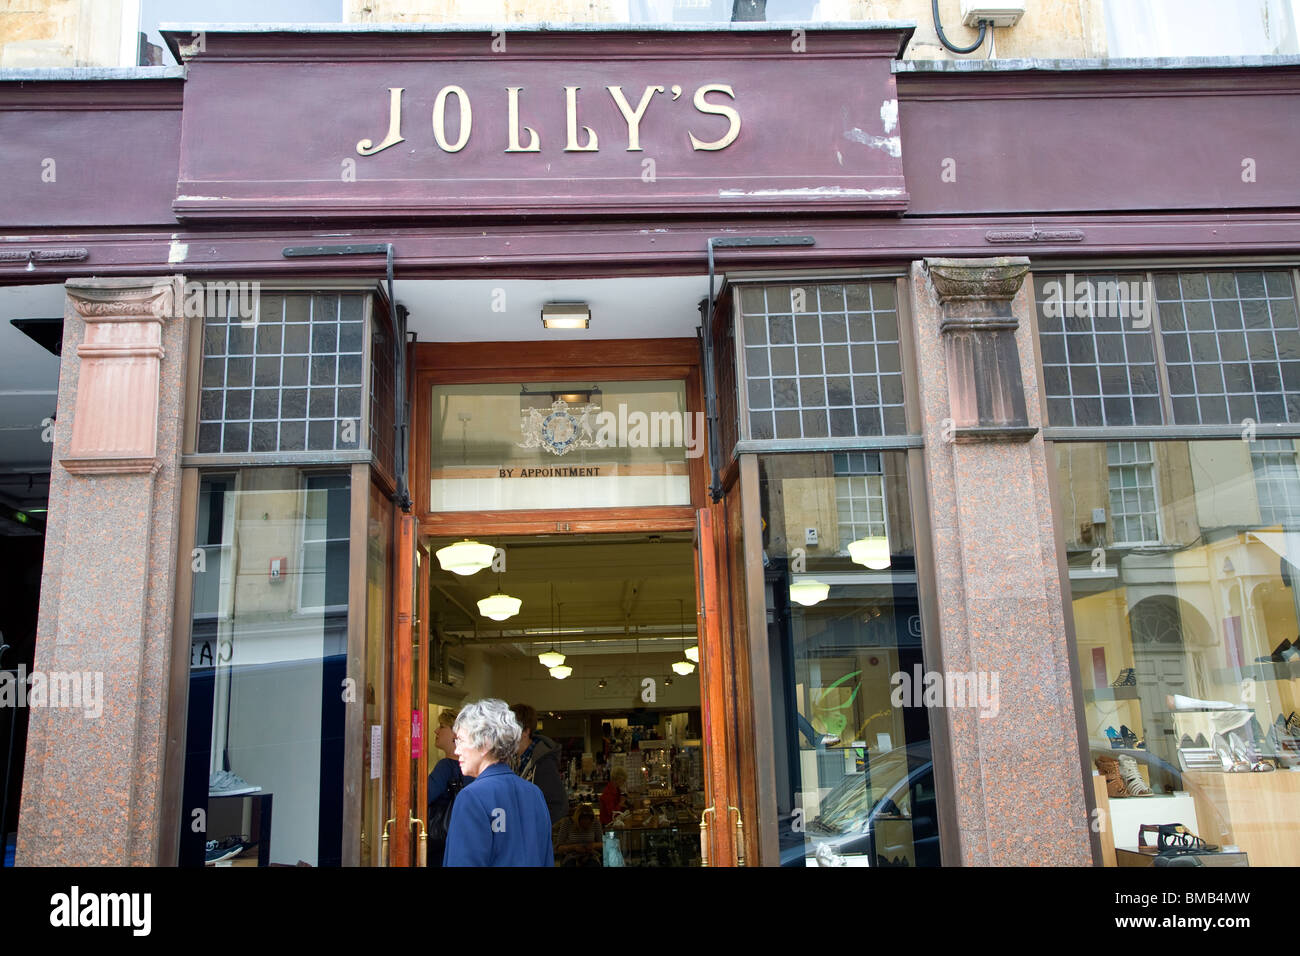 Jolly\'s department store sign, Milsom Street, Bath Stock Photo ...